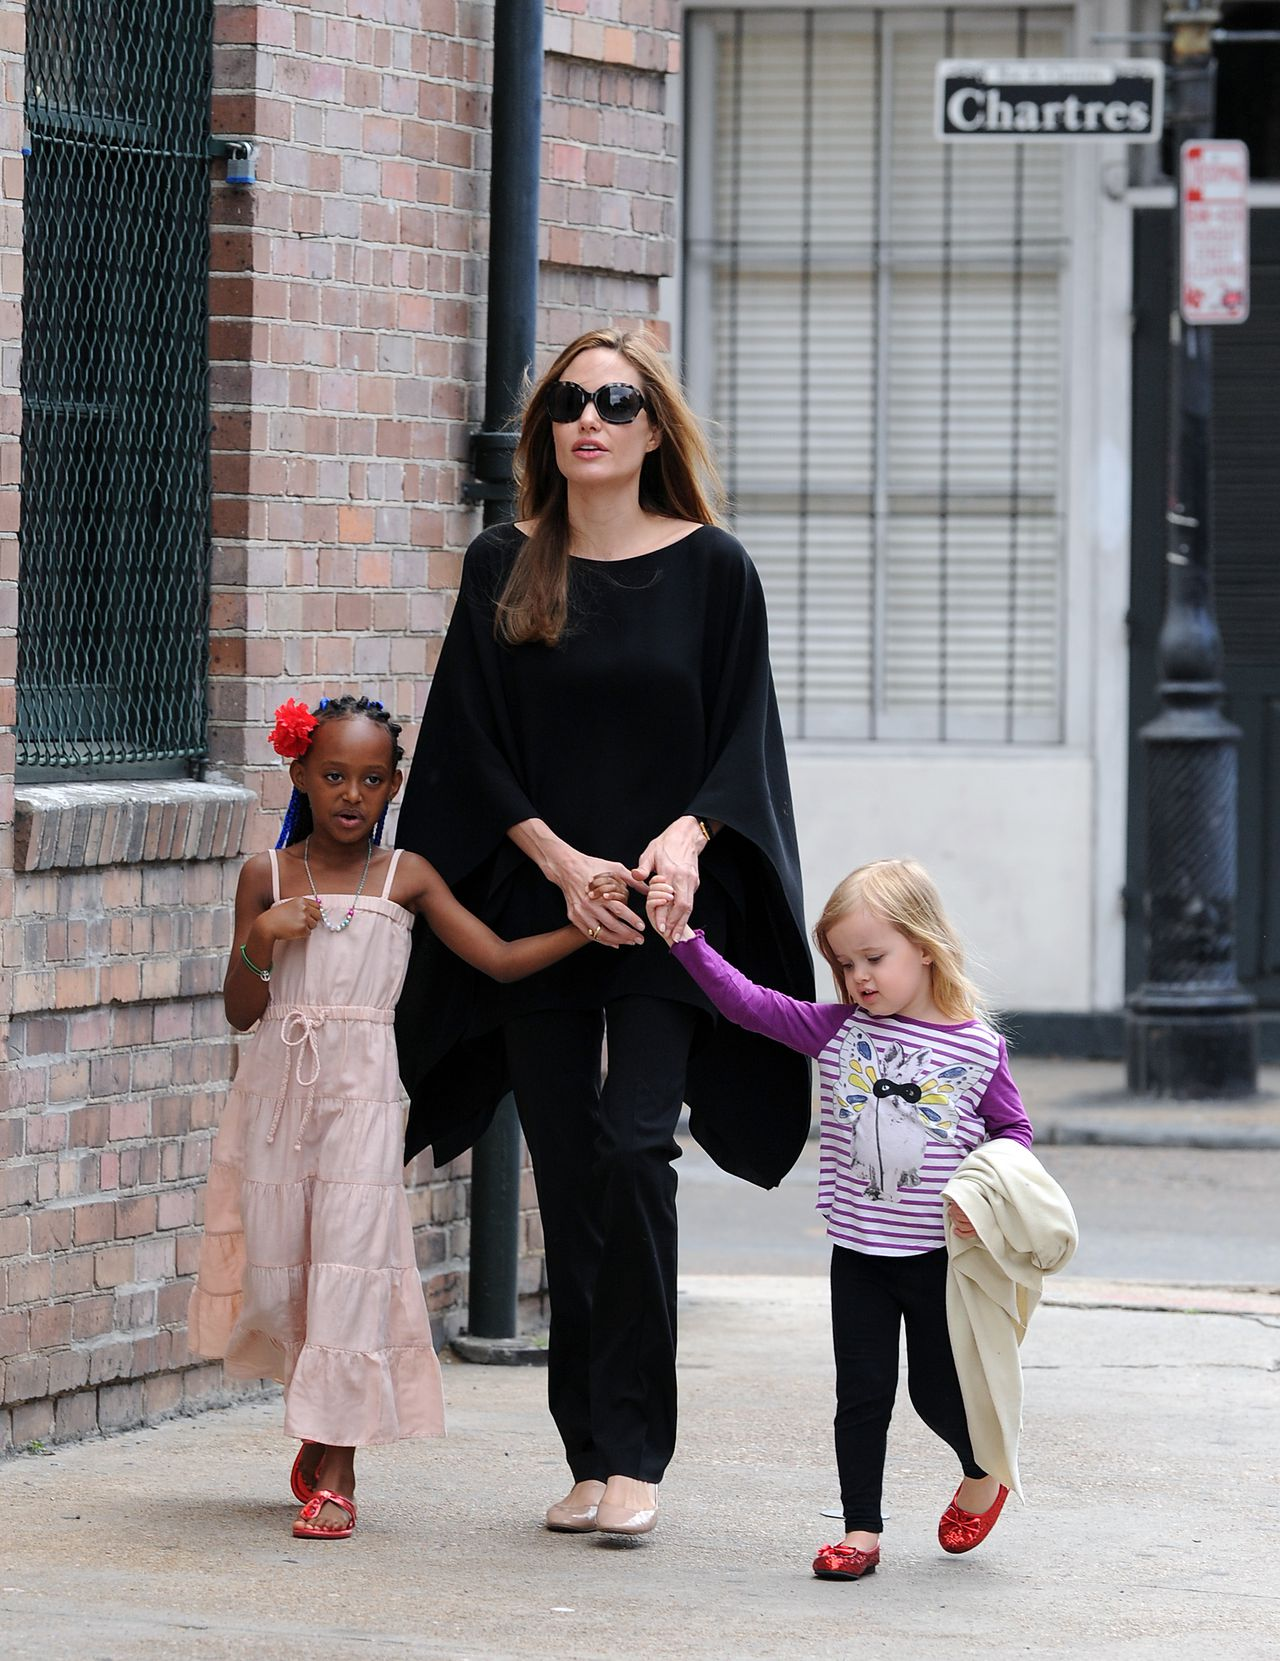 March 11, 2012 - New Orleans, Lousiana USA: Angelina Jolie takes some of her children, Pax, Zahara and Vivienne, out for a stroll in the French Quarter. (Andrea Renault/POLARIS) *** Local Caption *** 04045485